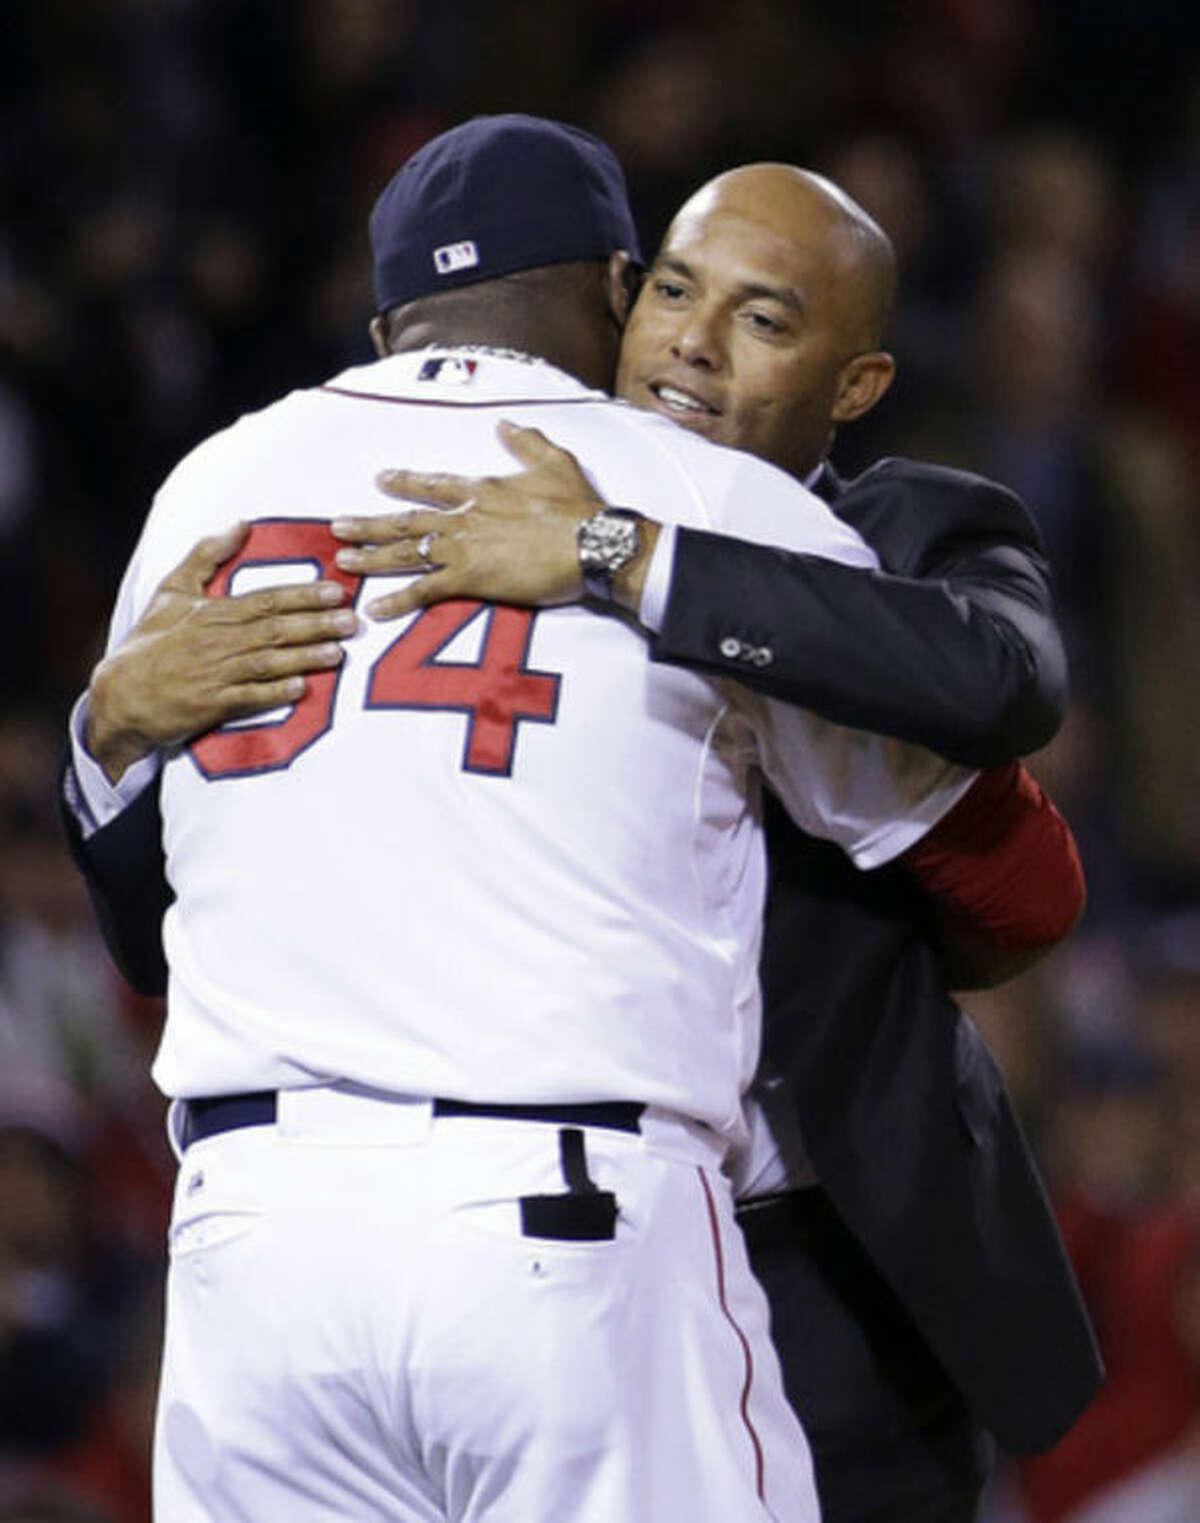 Former New York Yankee pitcher Mariano Rivera gets a hug from Boston Red Sox's David Ortiz before Game 2 of baseball's World Series between the Red Sox and St. Louis Cardinals Thursday, Oct. 24, 2013, in Boston. (AP Photo/David J. Phillip)